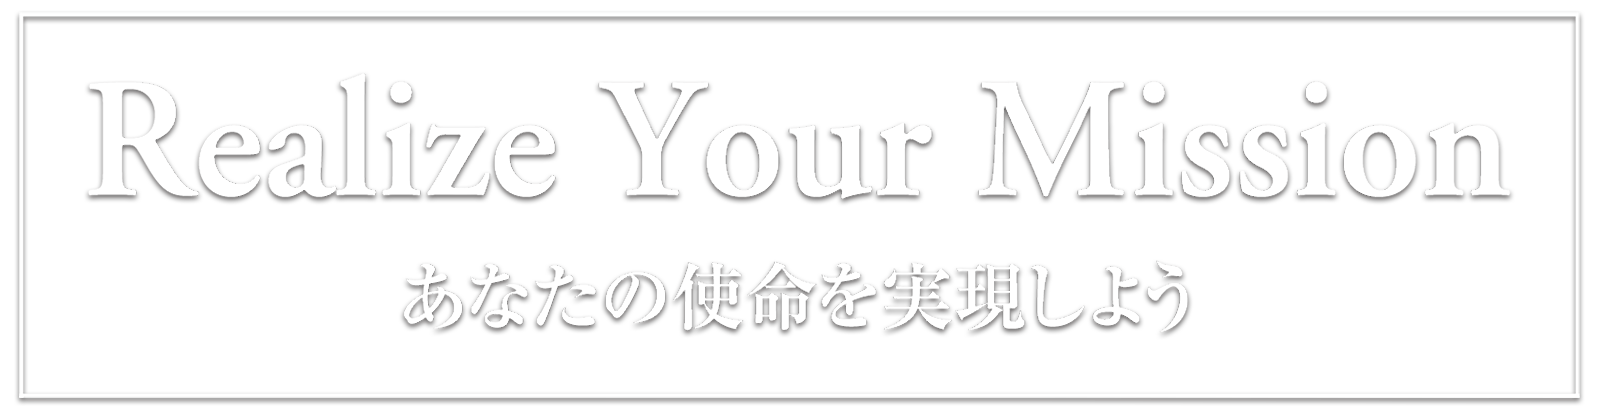 Realize Your Mission あなたの使命を実現しよう